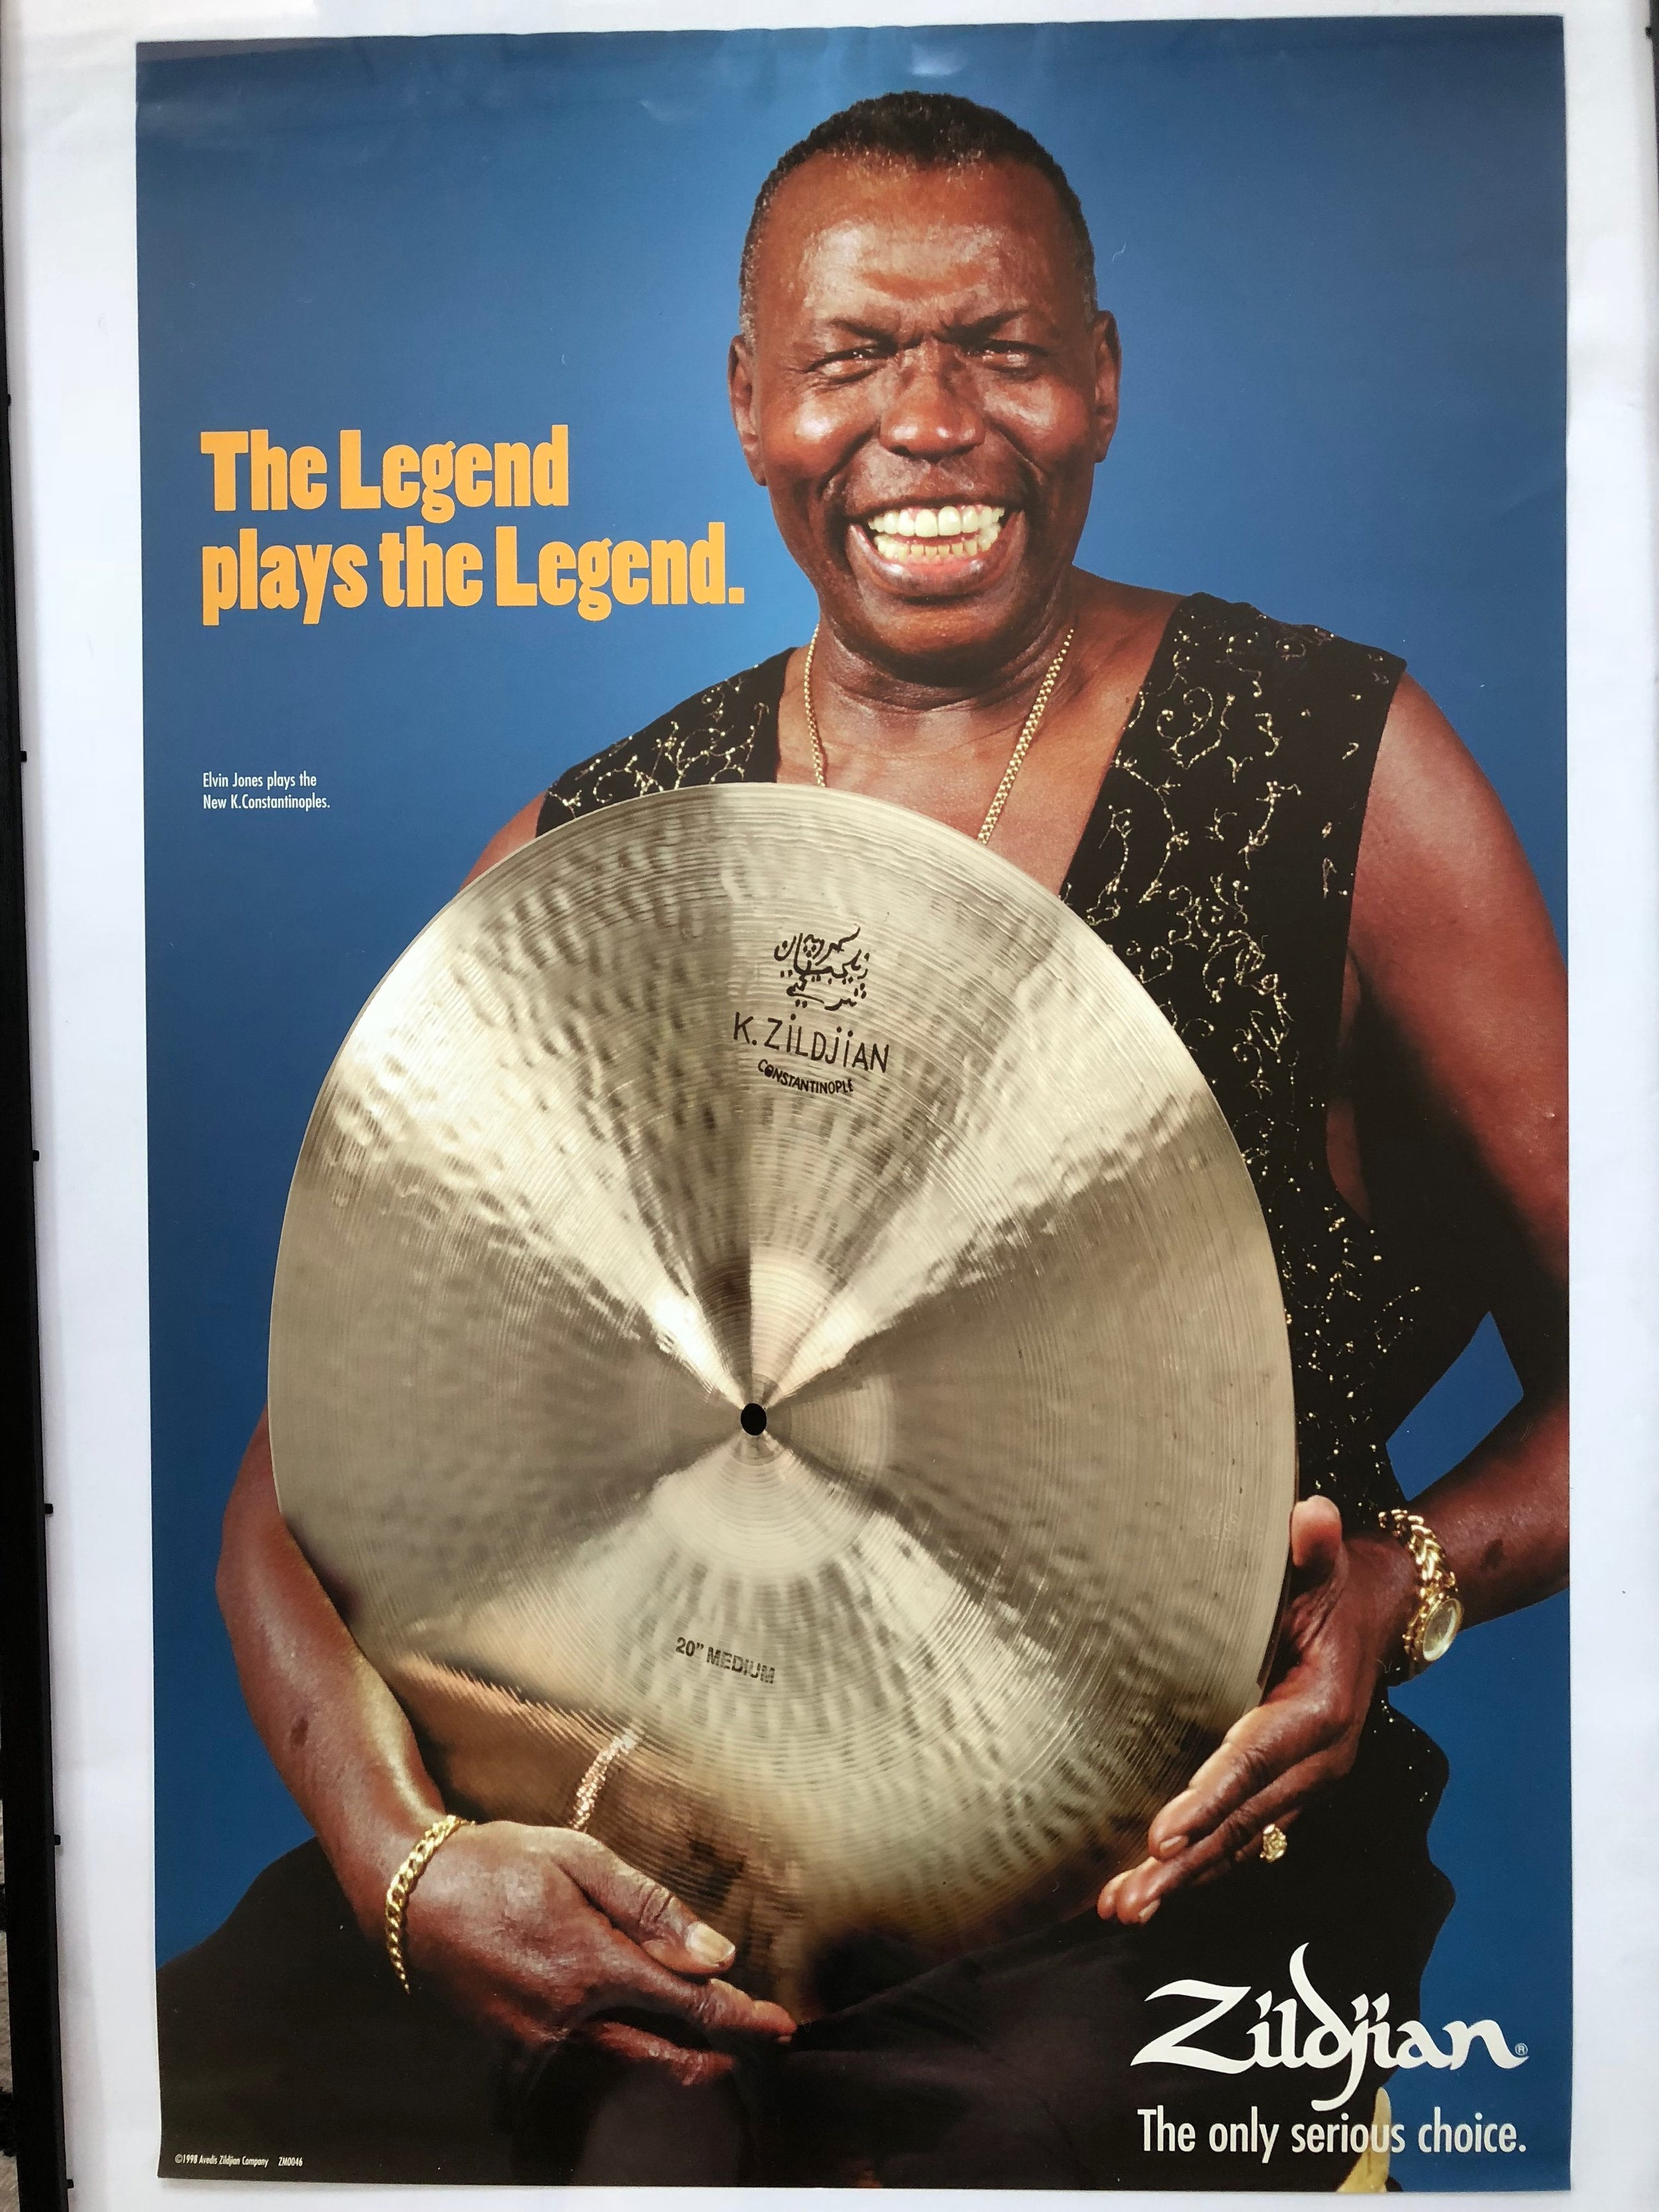 09, K. Zildjian, The Legend.jpg